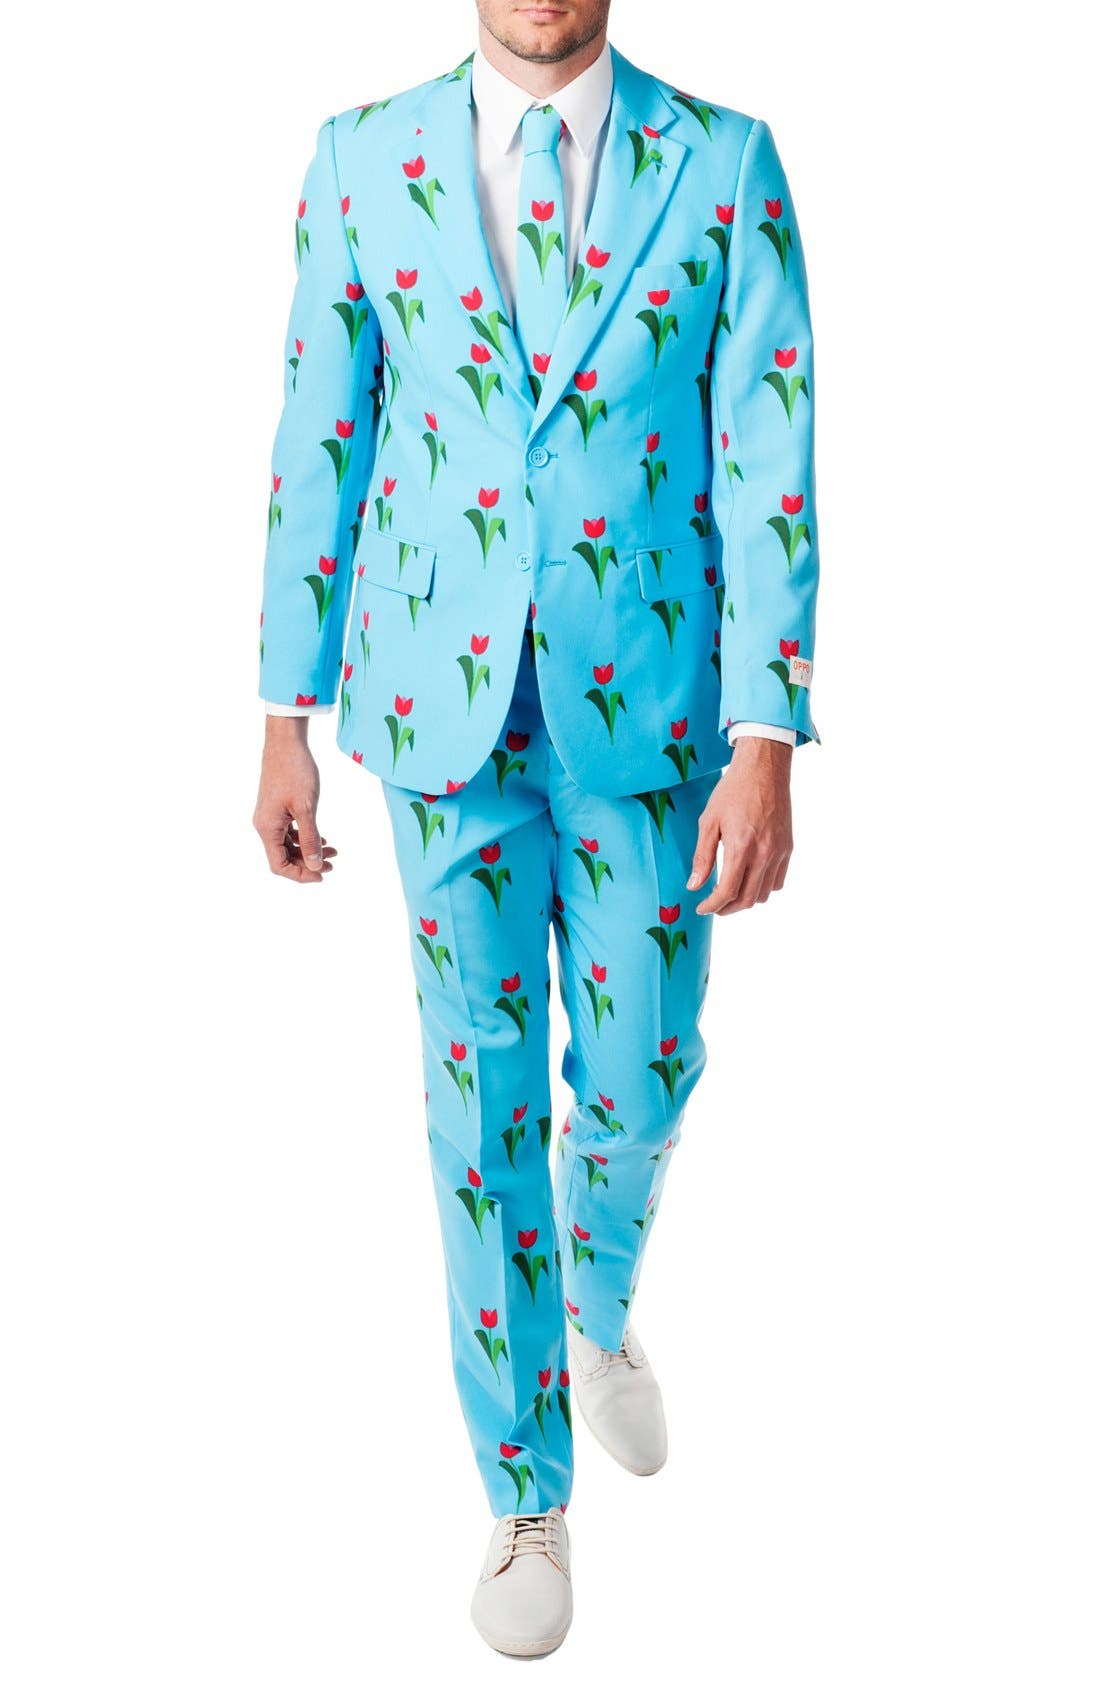 OPPOSUITS 'Tulips from Amsterdam' Trim Fit Two-Piece Suit